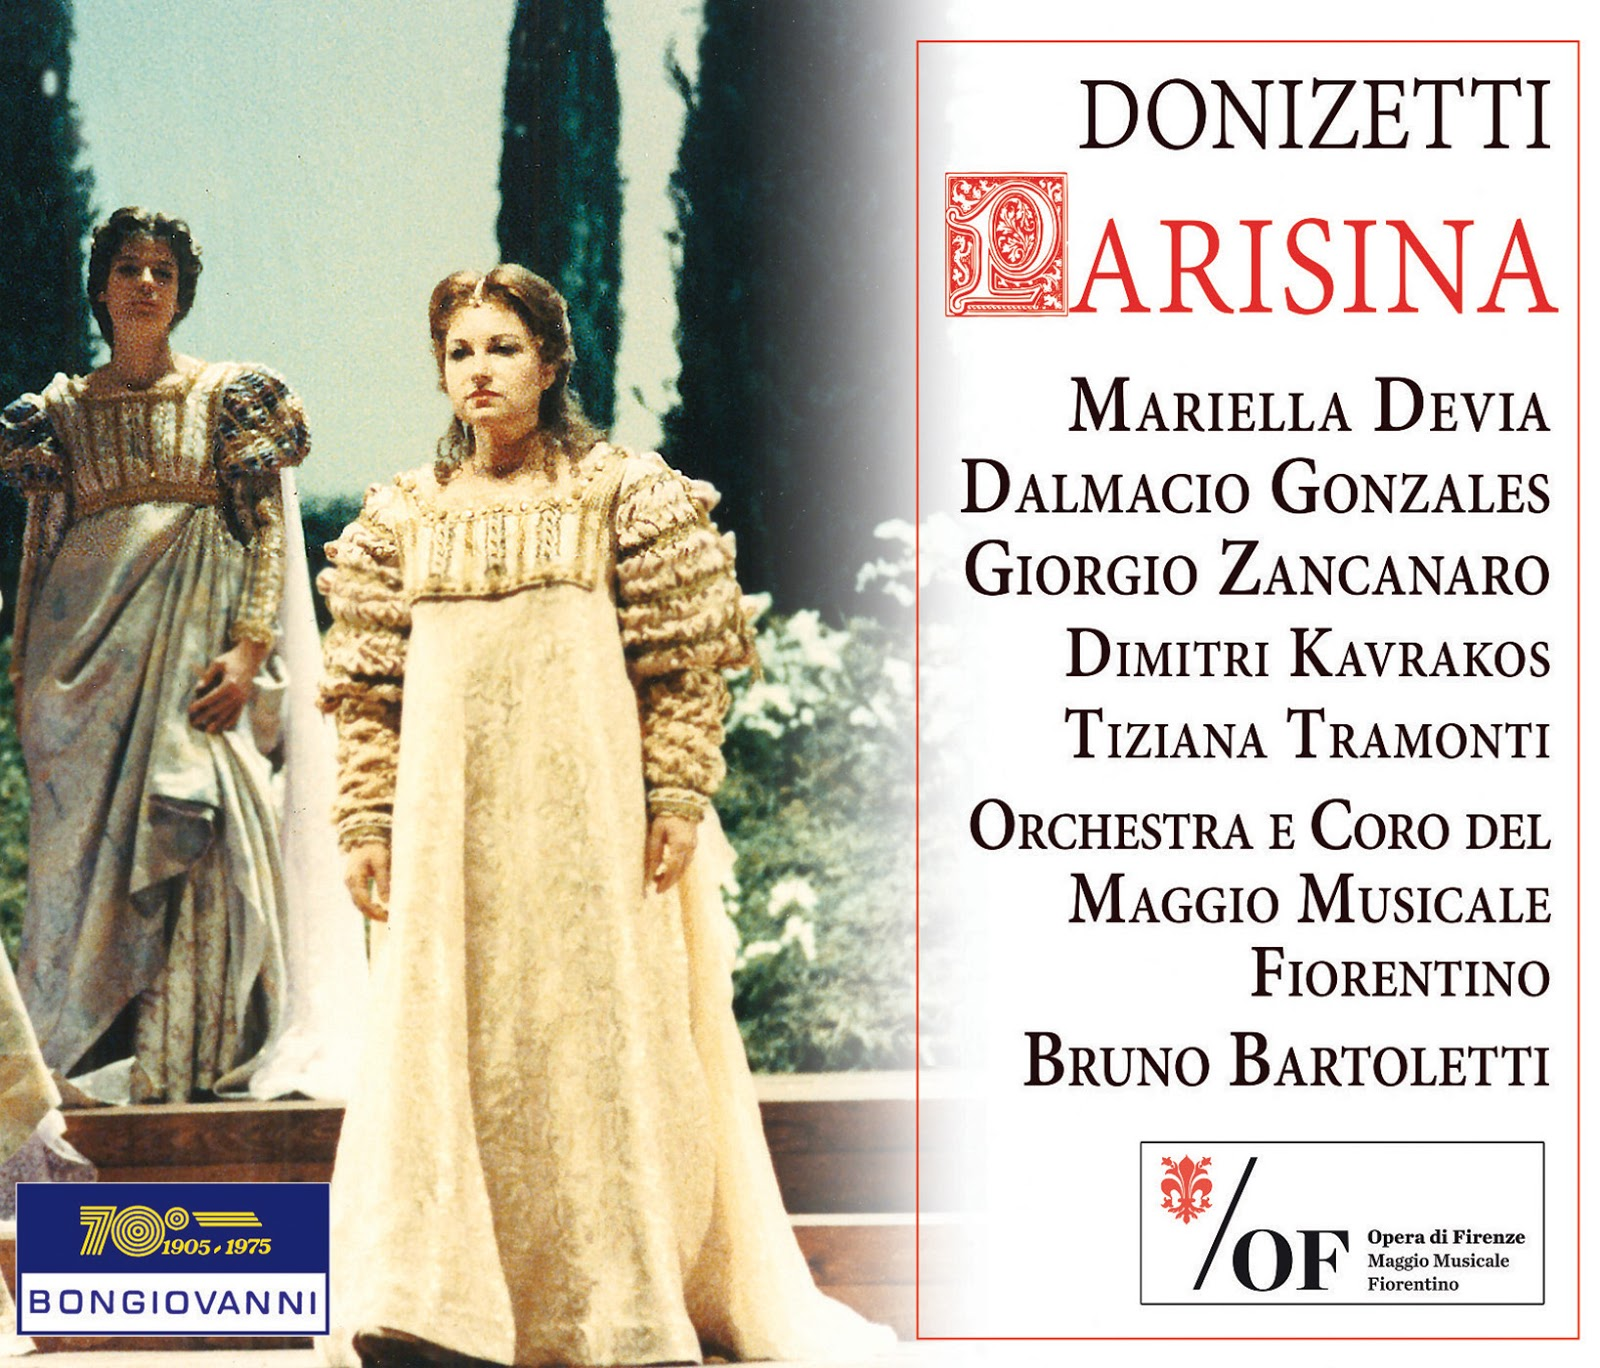 CD REVIEW: Gaetano Donizetti - PARISINA D'ESTE (Bongiovanni GB 2569/70-2)